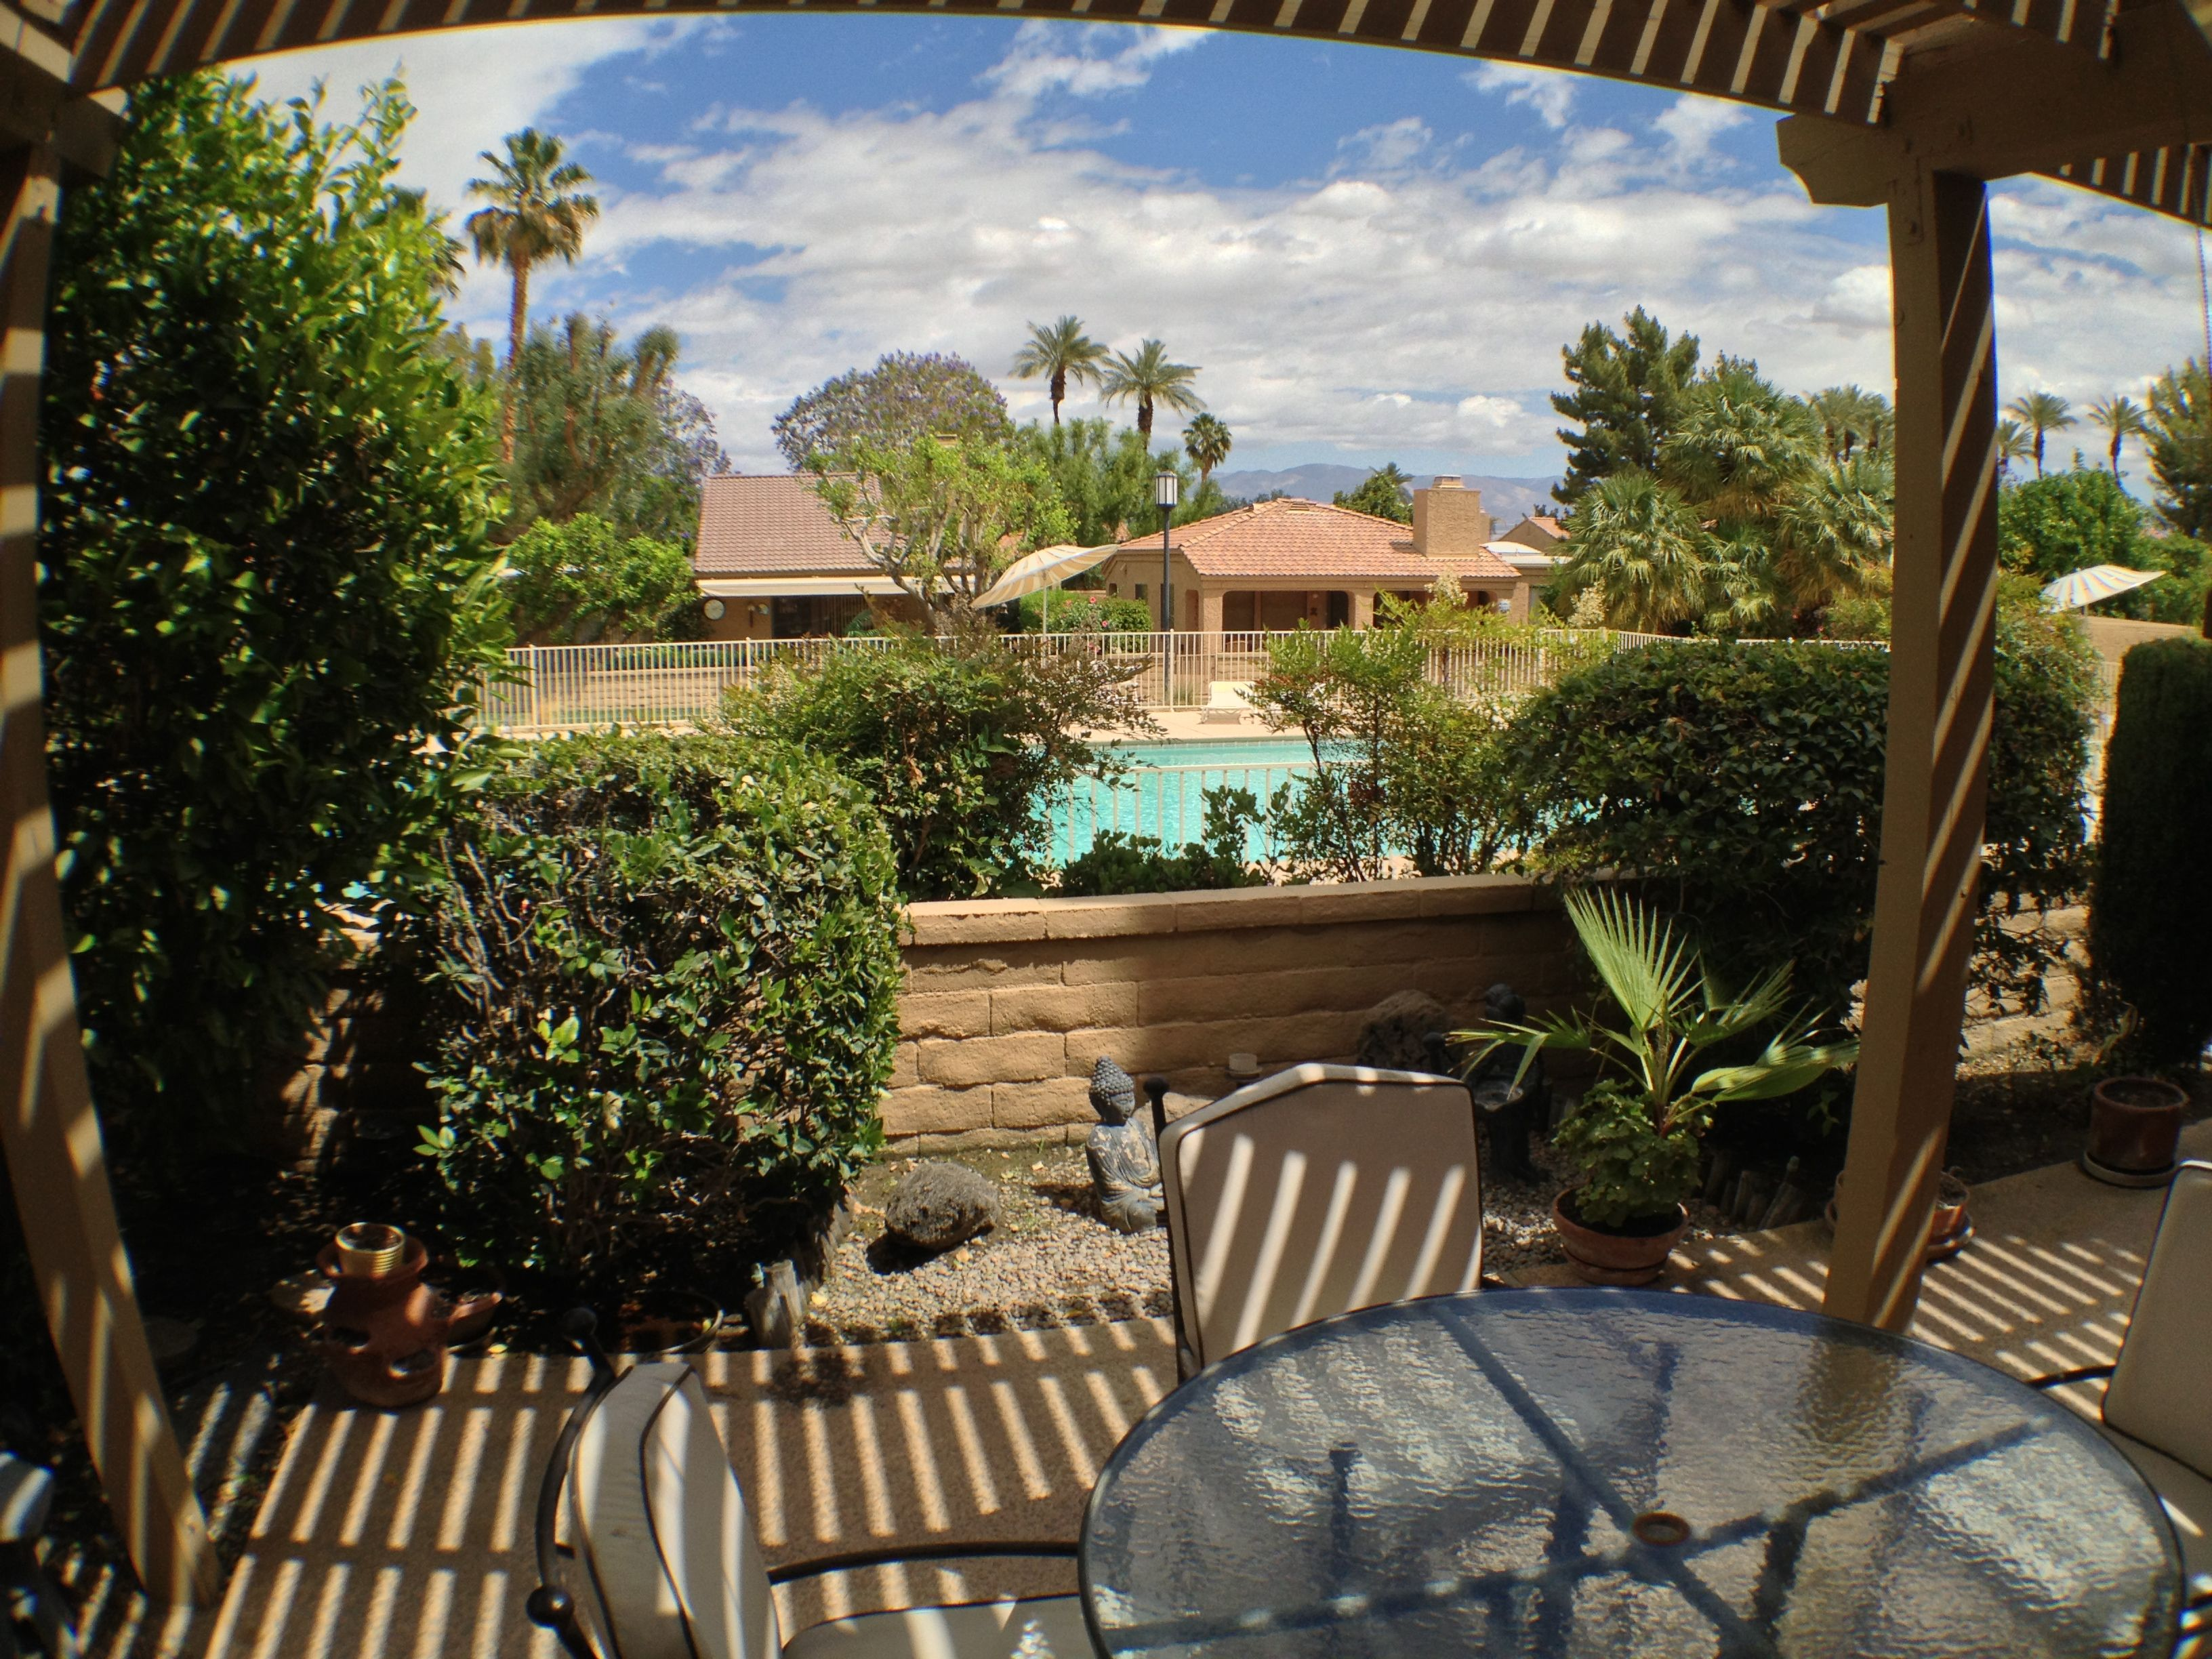 SOLD Great buy in Hidden Palms for under 250,000. Just a